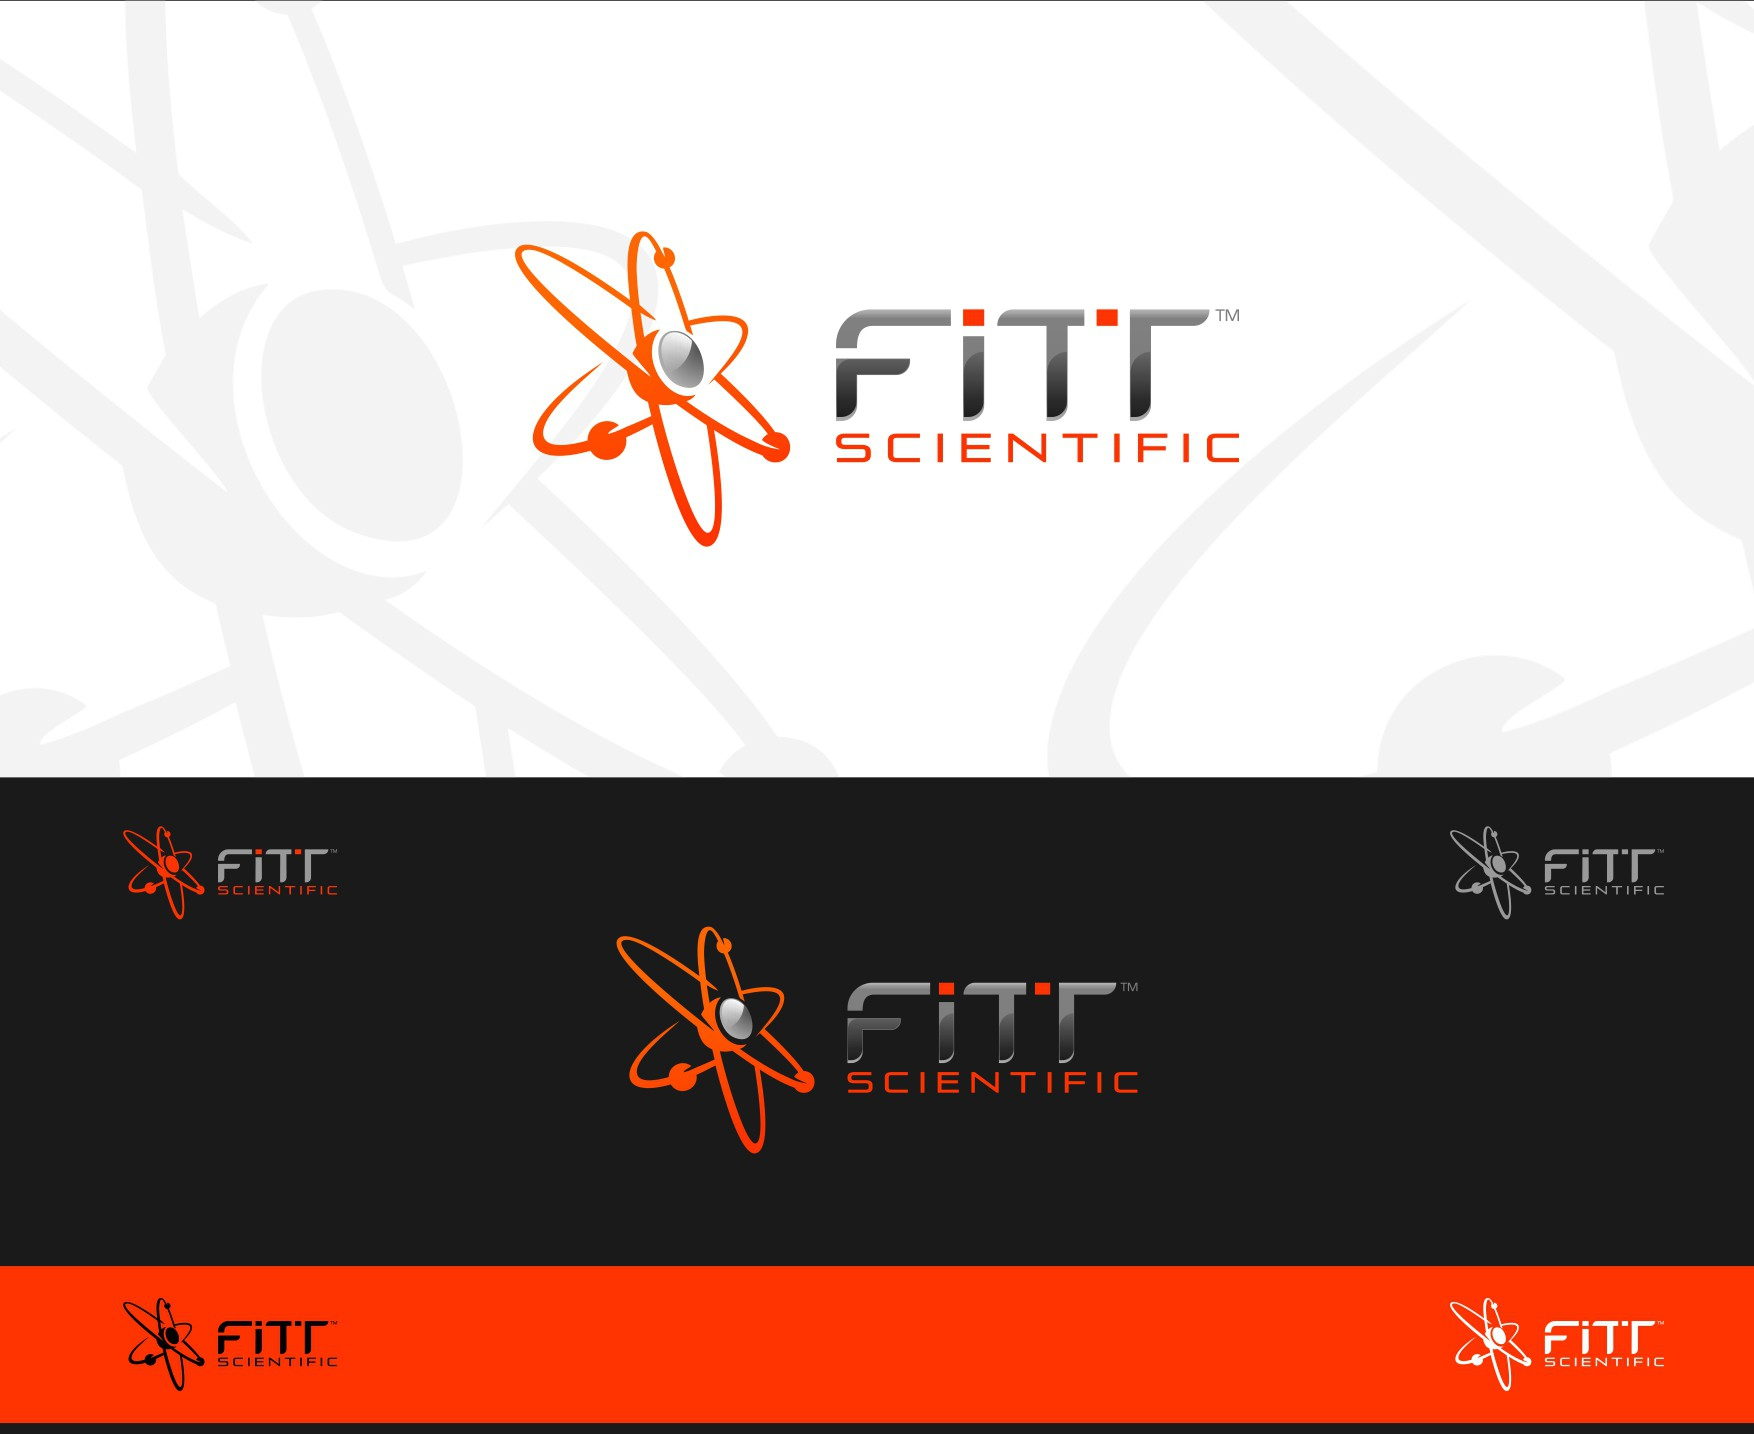 Create a Logo for an up-and-coming Scientific Services Company (FITT Scientific, LLC)